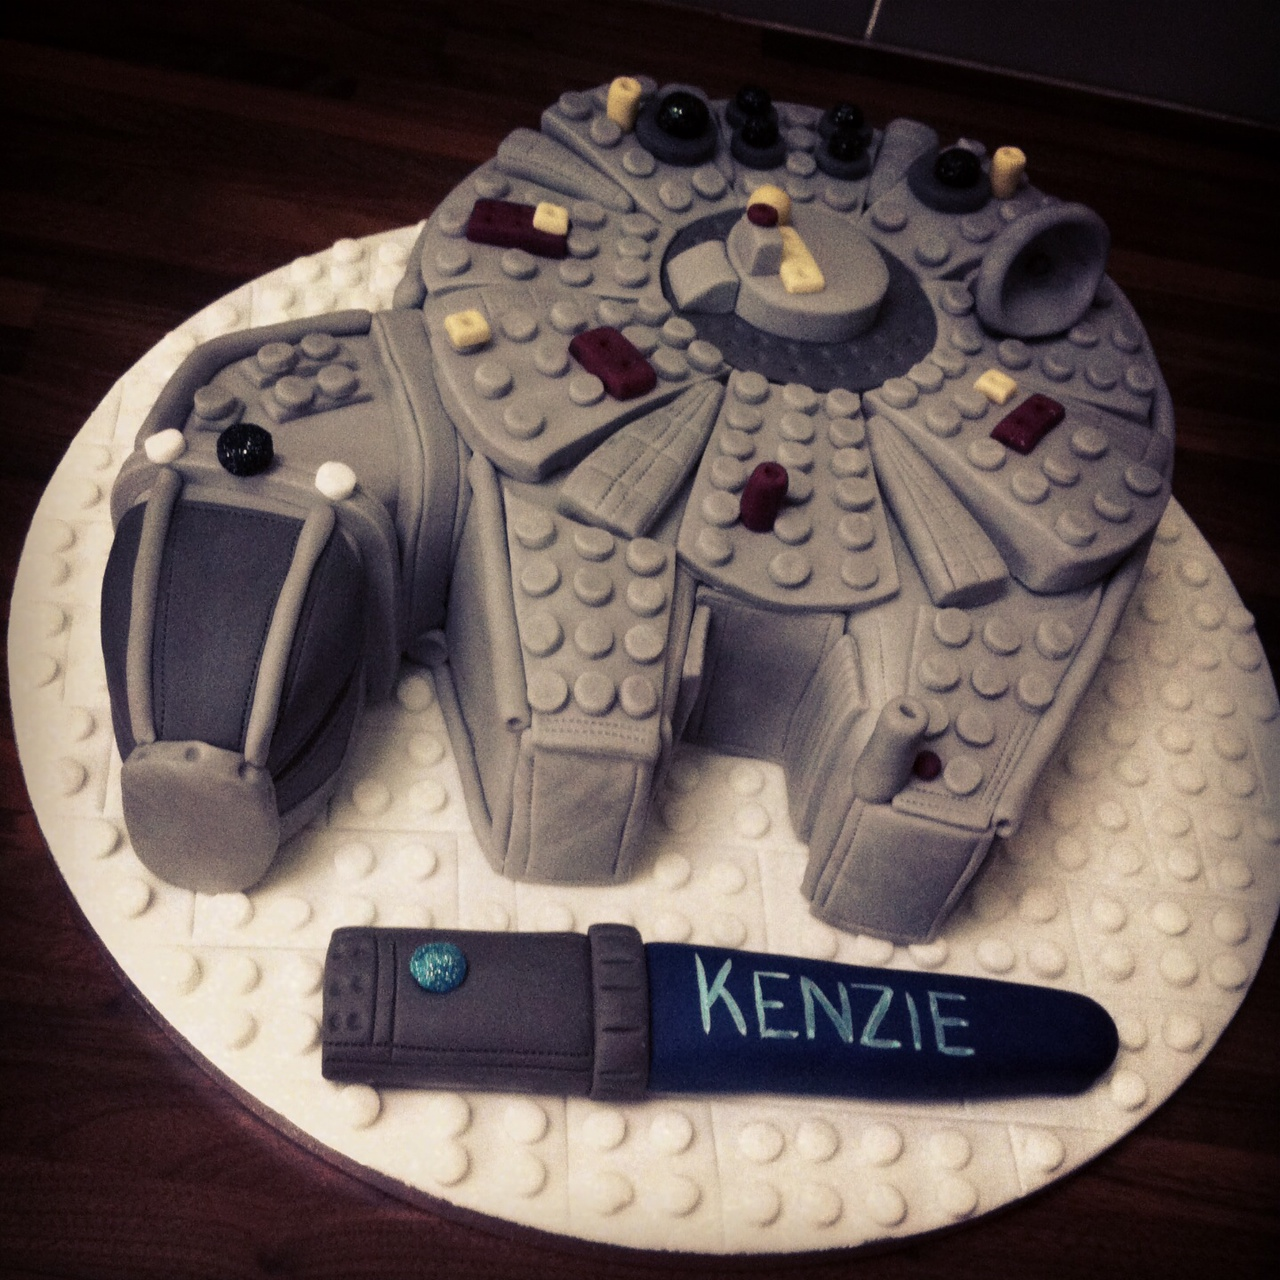 Lego Starwars Cake Licky Lips Cakes Liverpool